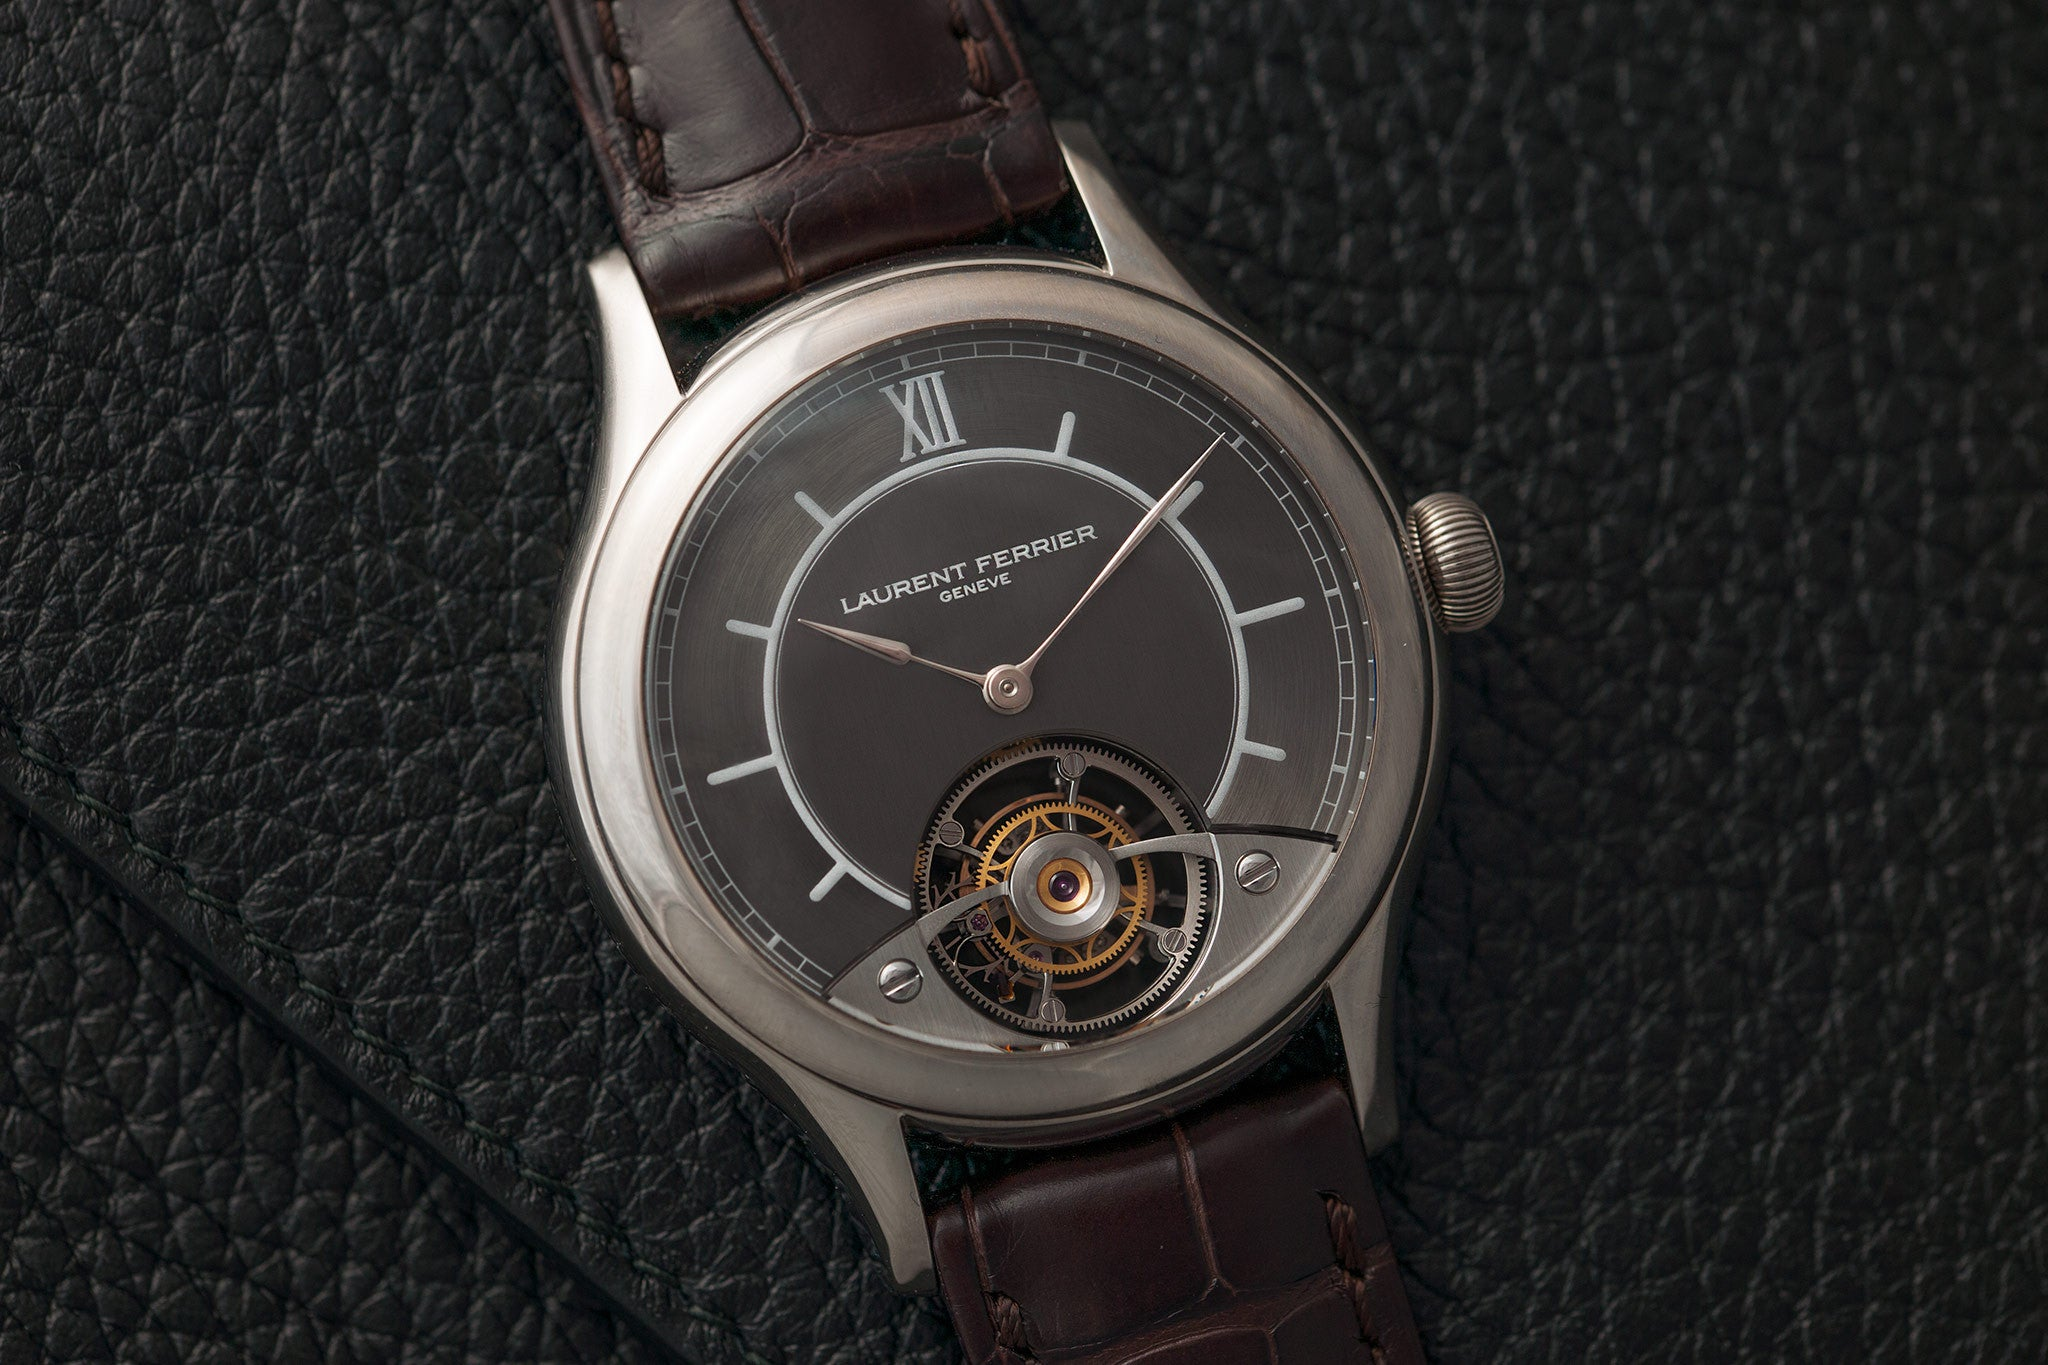 Laurent Ferrier Galet Classic Tourbillon watch at A Collected Man - approved seller of independent watchmakers